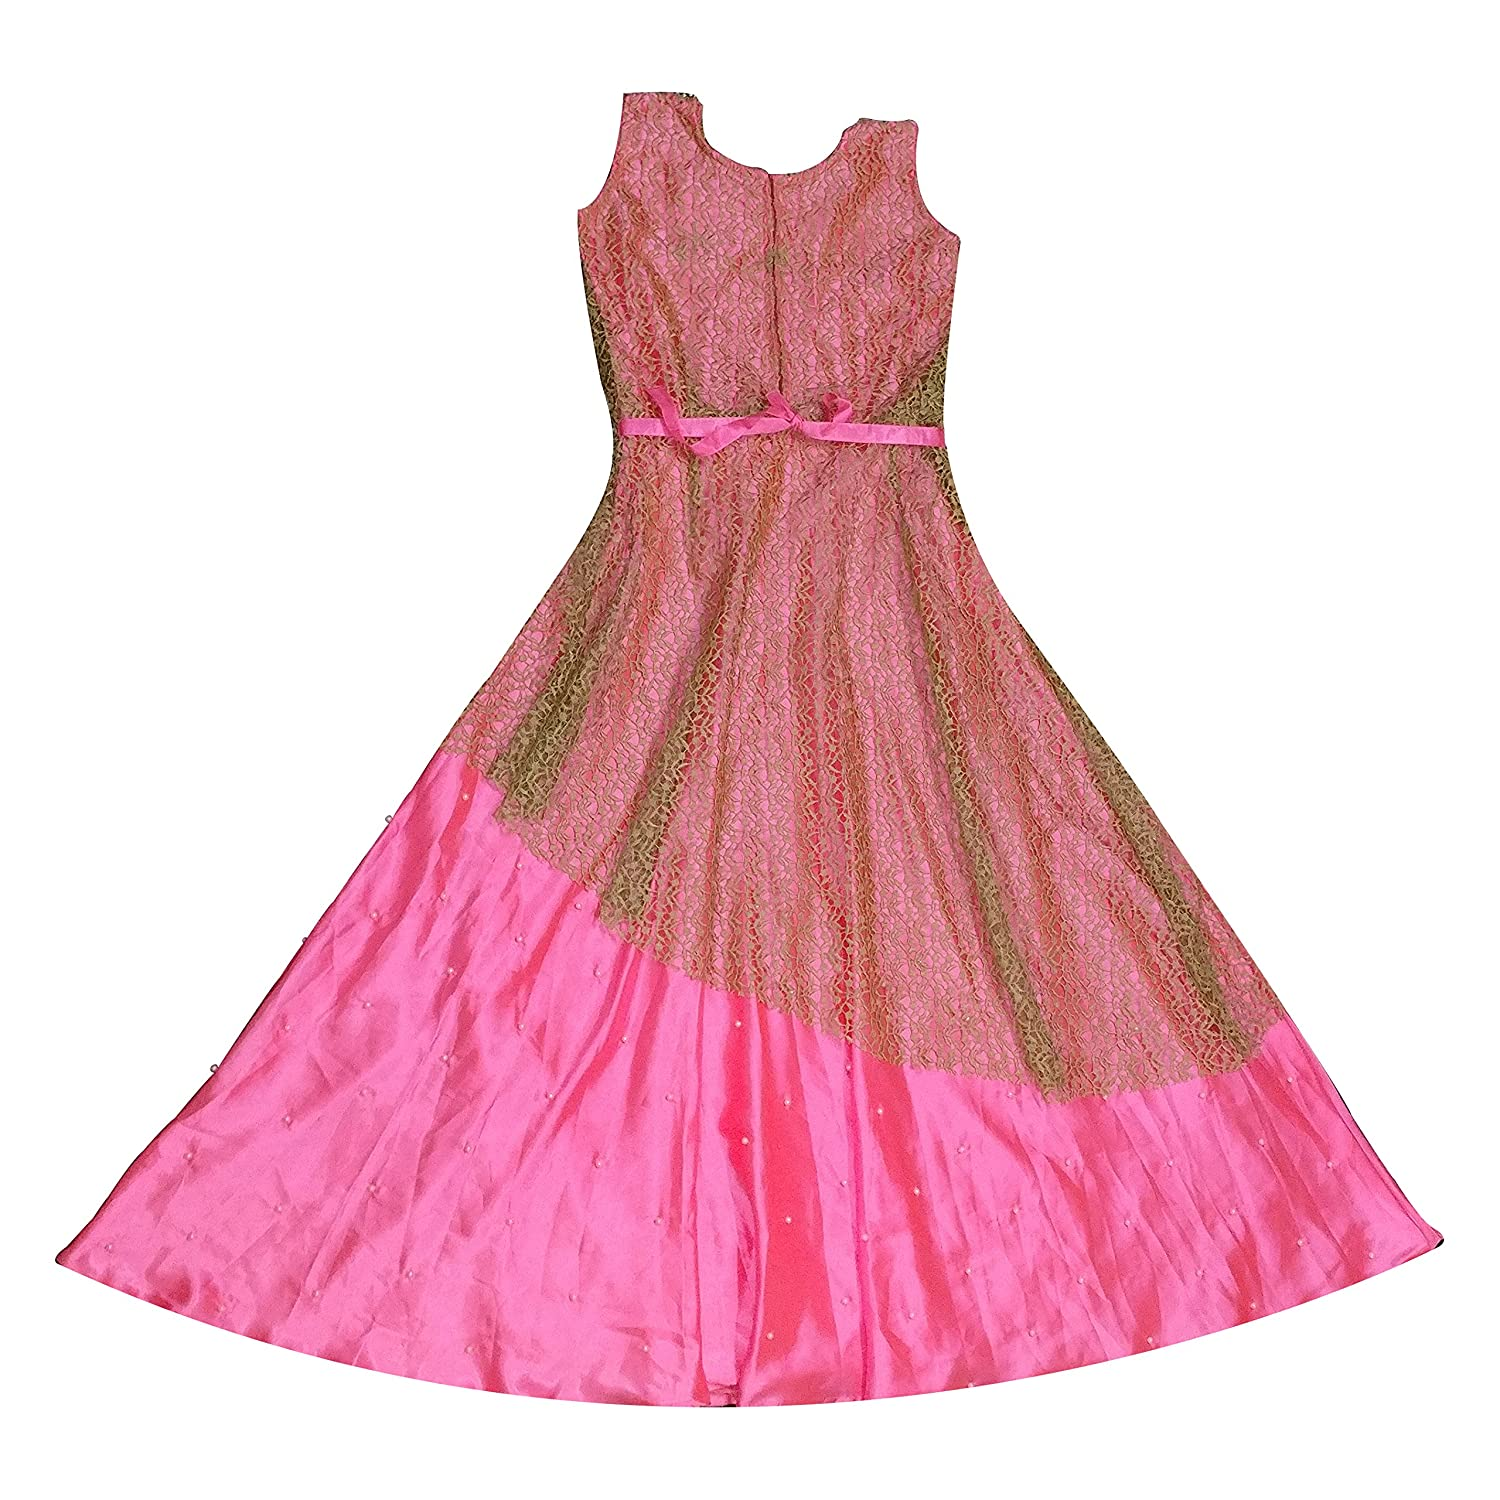 White Button Girl s Light Pink Heavy Chiffely Embroidery with Mottif Work  Readymade Birthday Wear Princess Kids Wear Gown Dress  Amazon.in  Clothing    ... 972198067f90